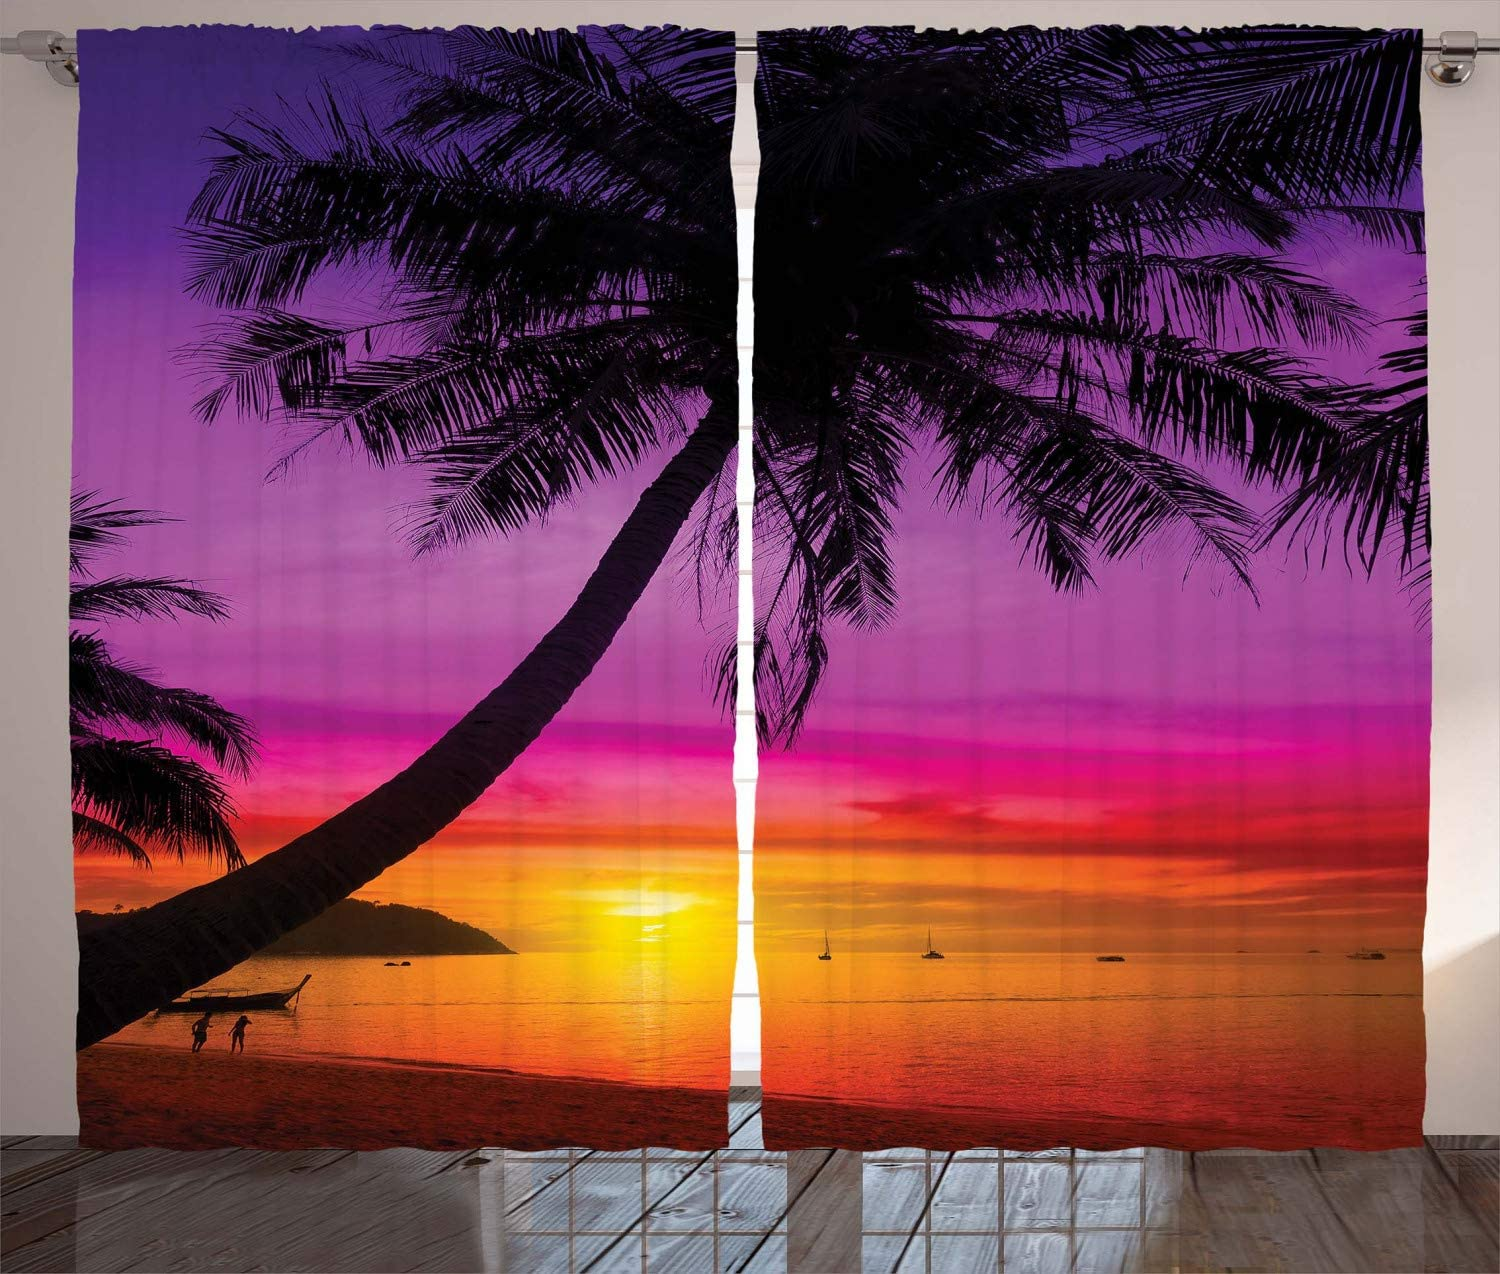 Ambesonne Tropical Curtains, Palm Tree Silhouette on Beach at Sunset Summertime Travel Destination, Living Room Bedroom Window Drapes 2 Panel Set, 108